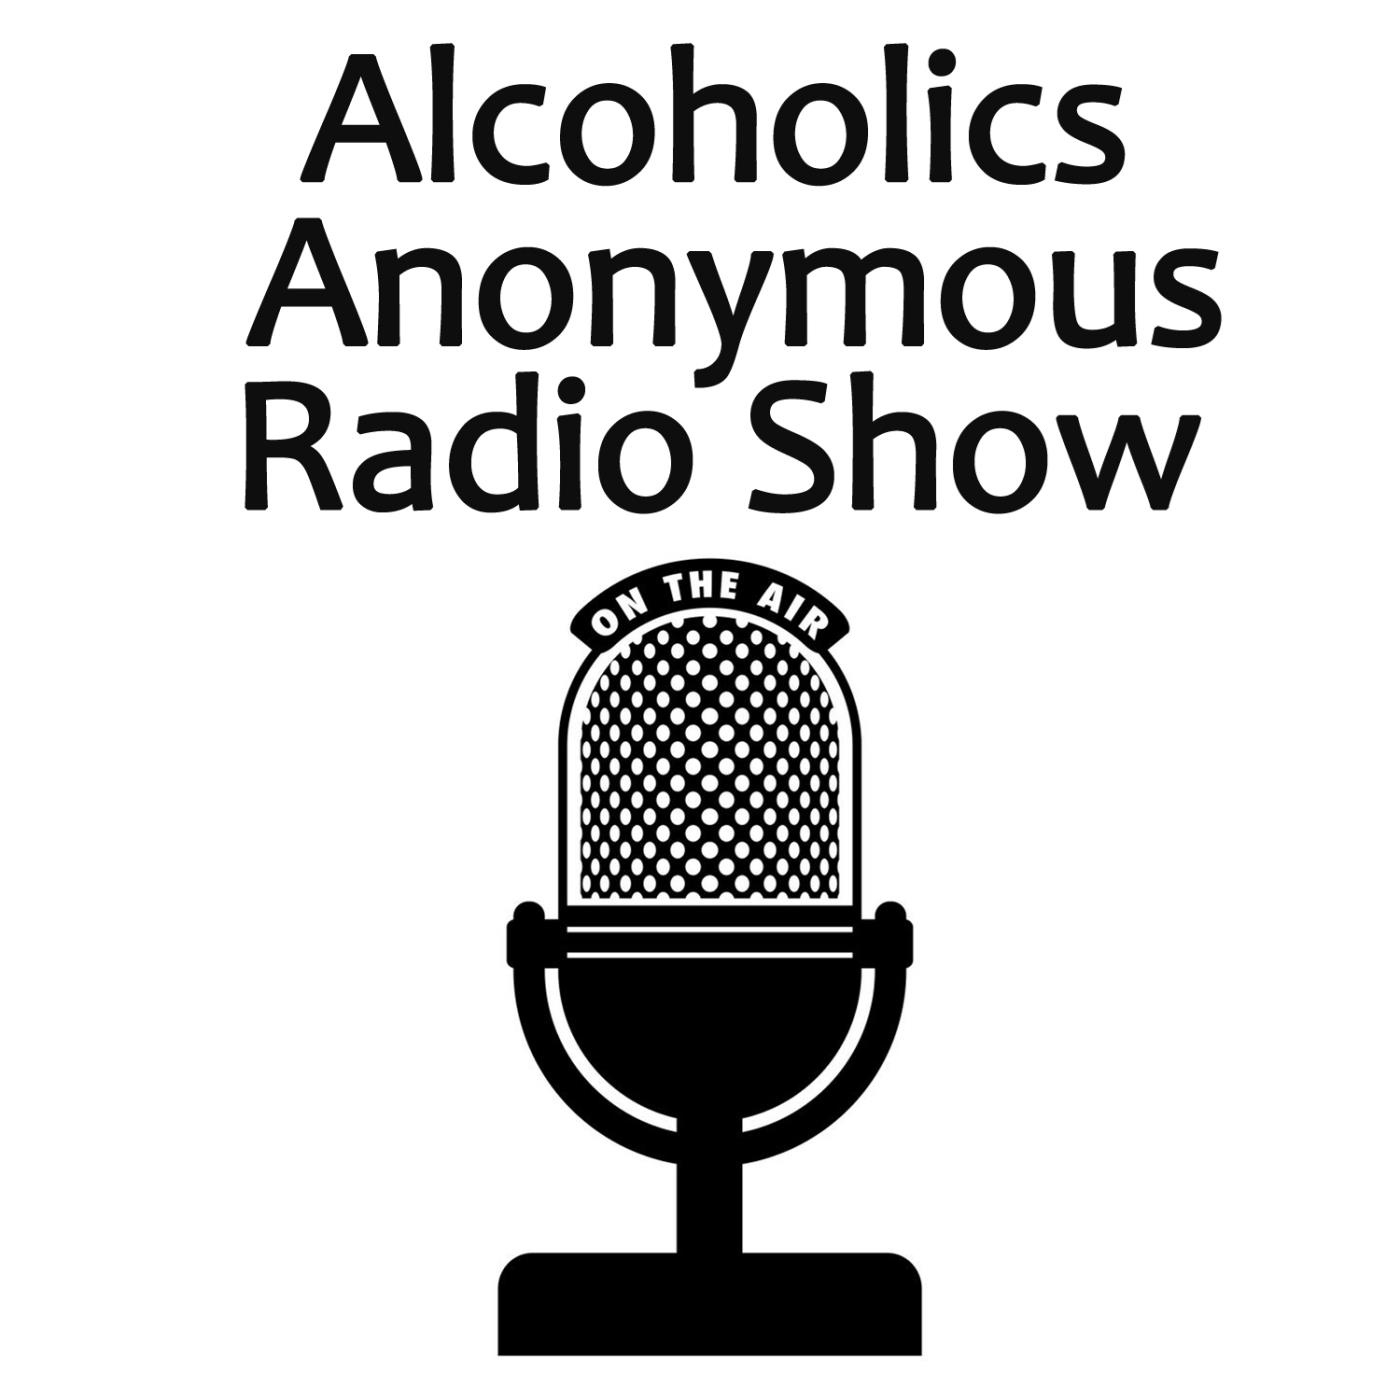 Alcoholics Anonymous Radio Show